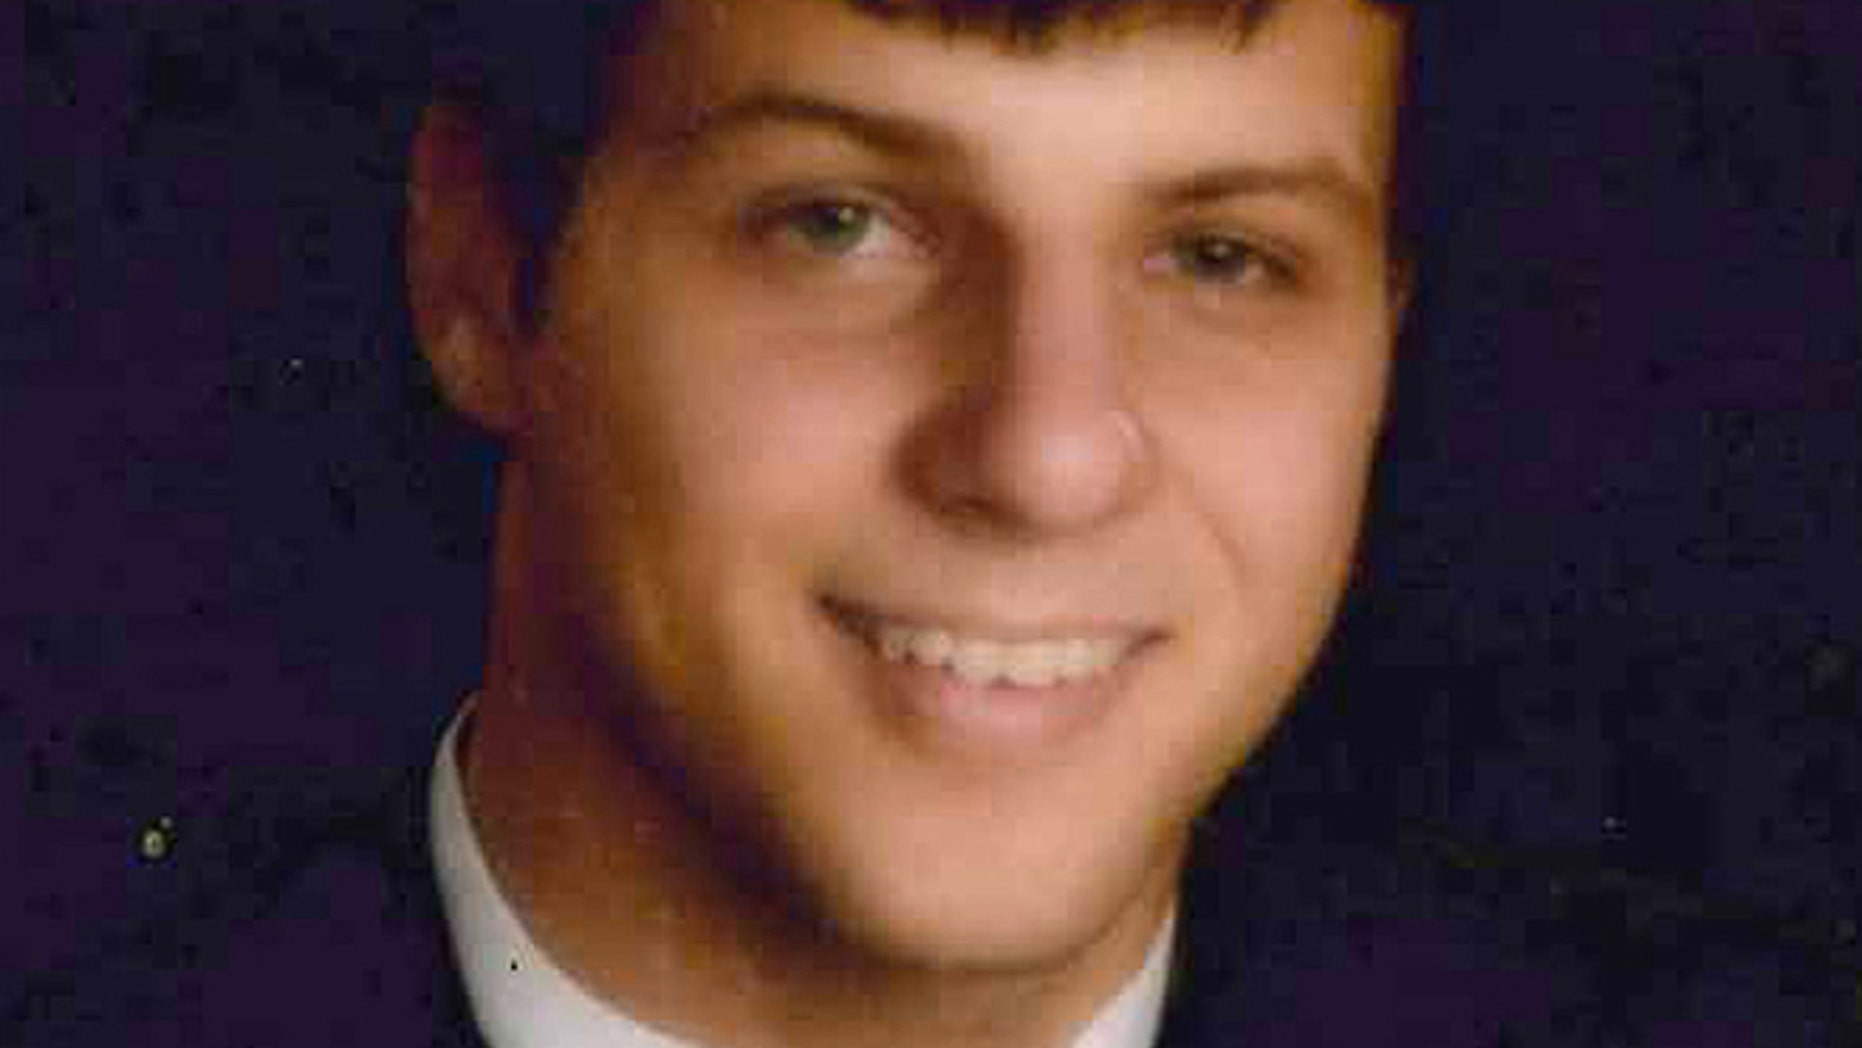 This undated Collar family photo shows University of South Alabama freshman Gil Collar, 18, who was shot to death by a campus police officer on Saturday, Oct. 6, 2012, in Mobile, Ala.